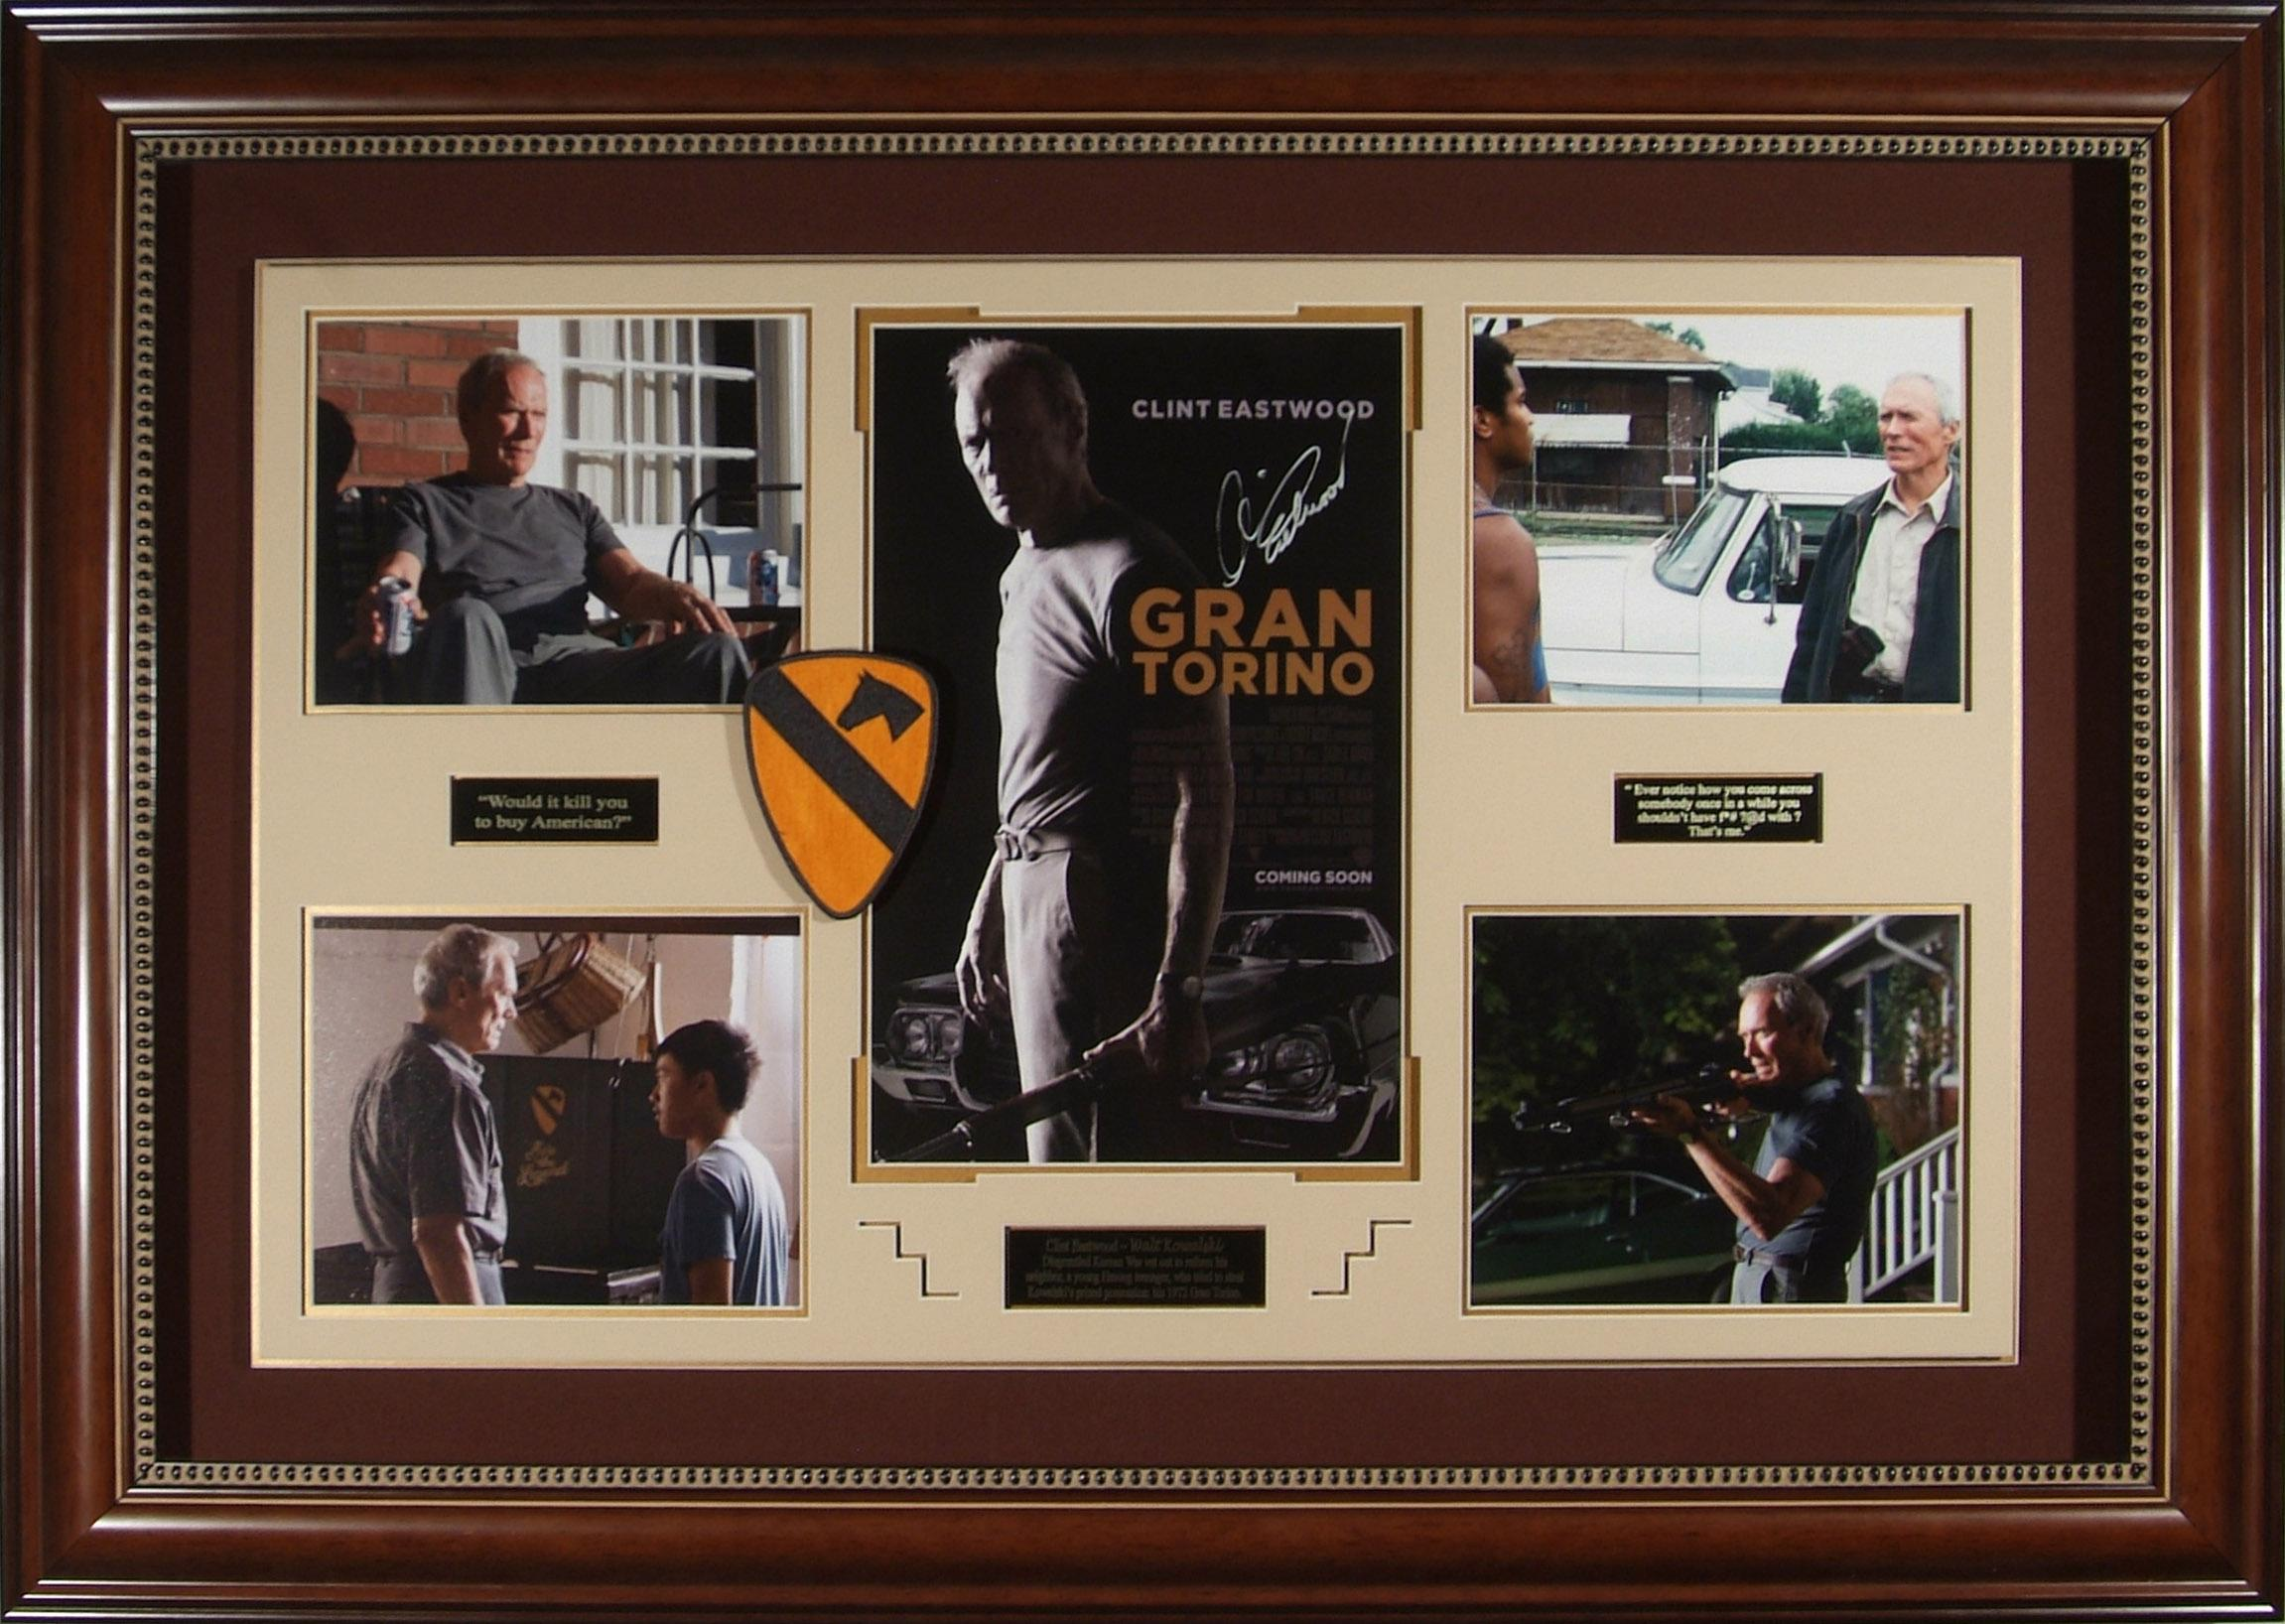 Gran Torino - Clint Eastwood Autographed Movie Display